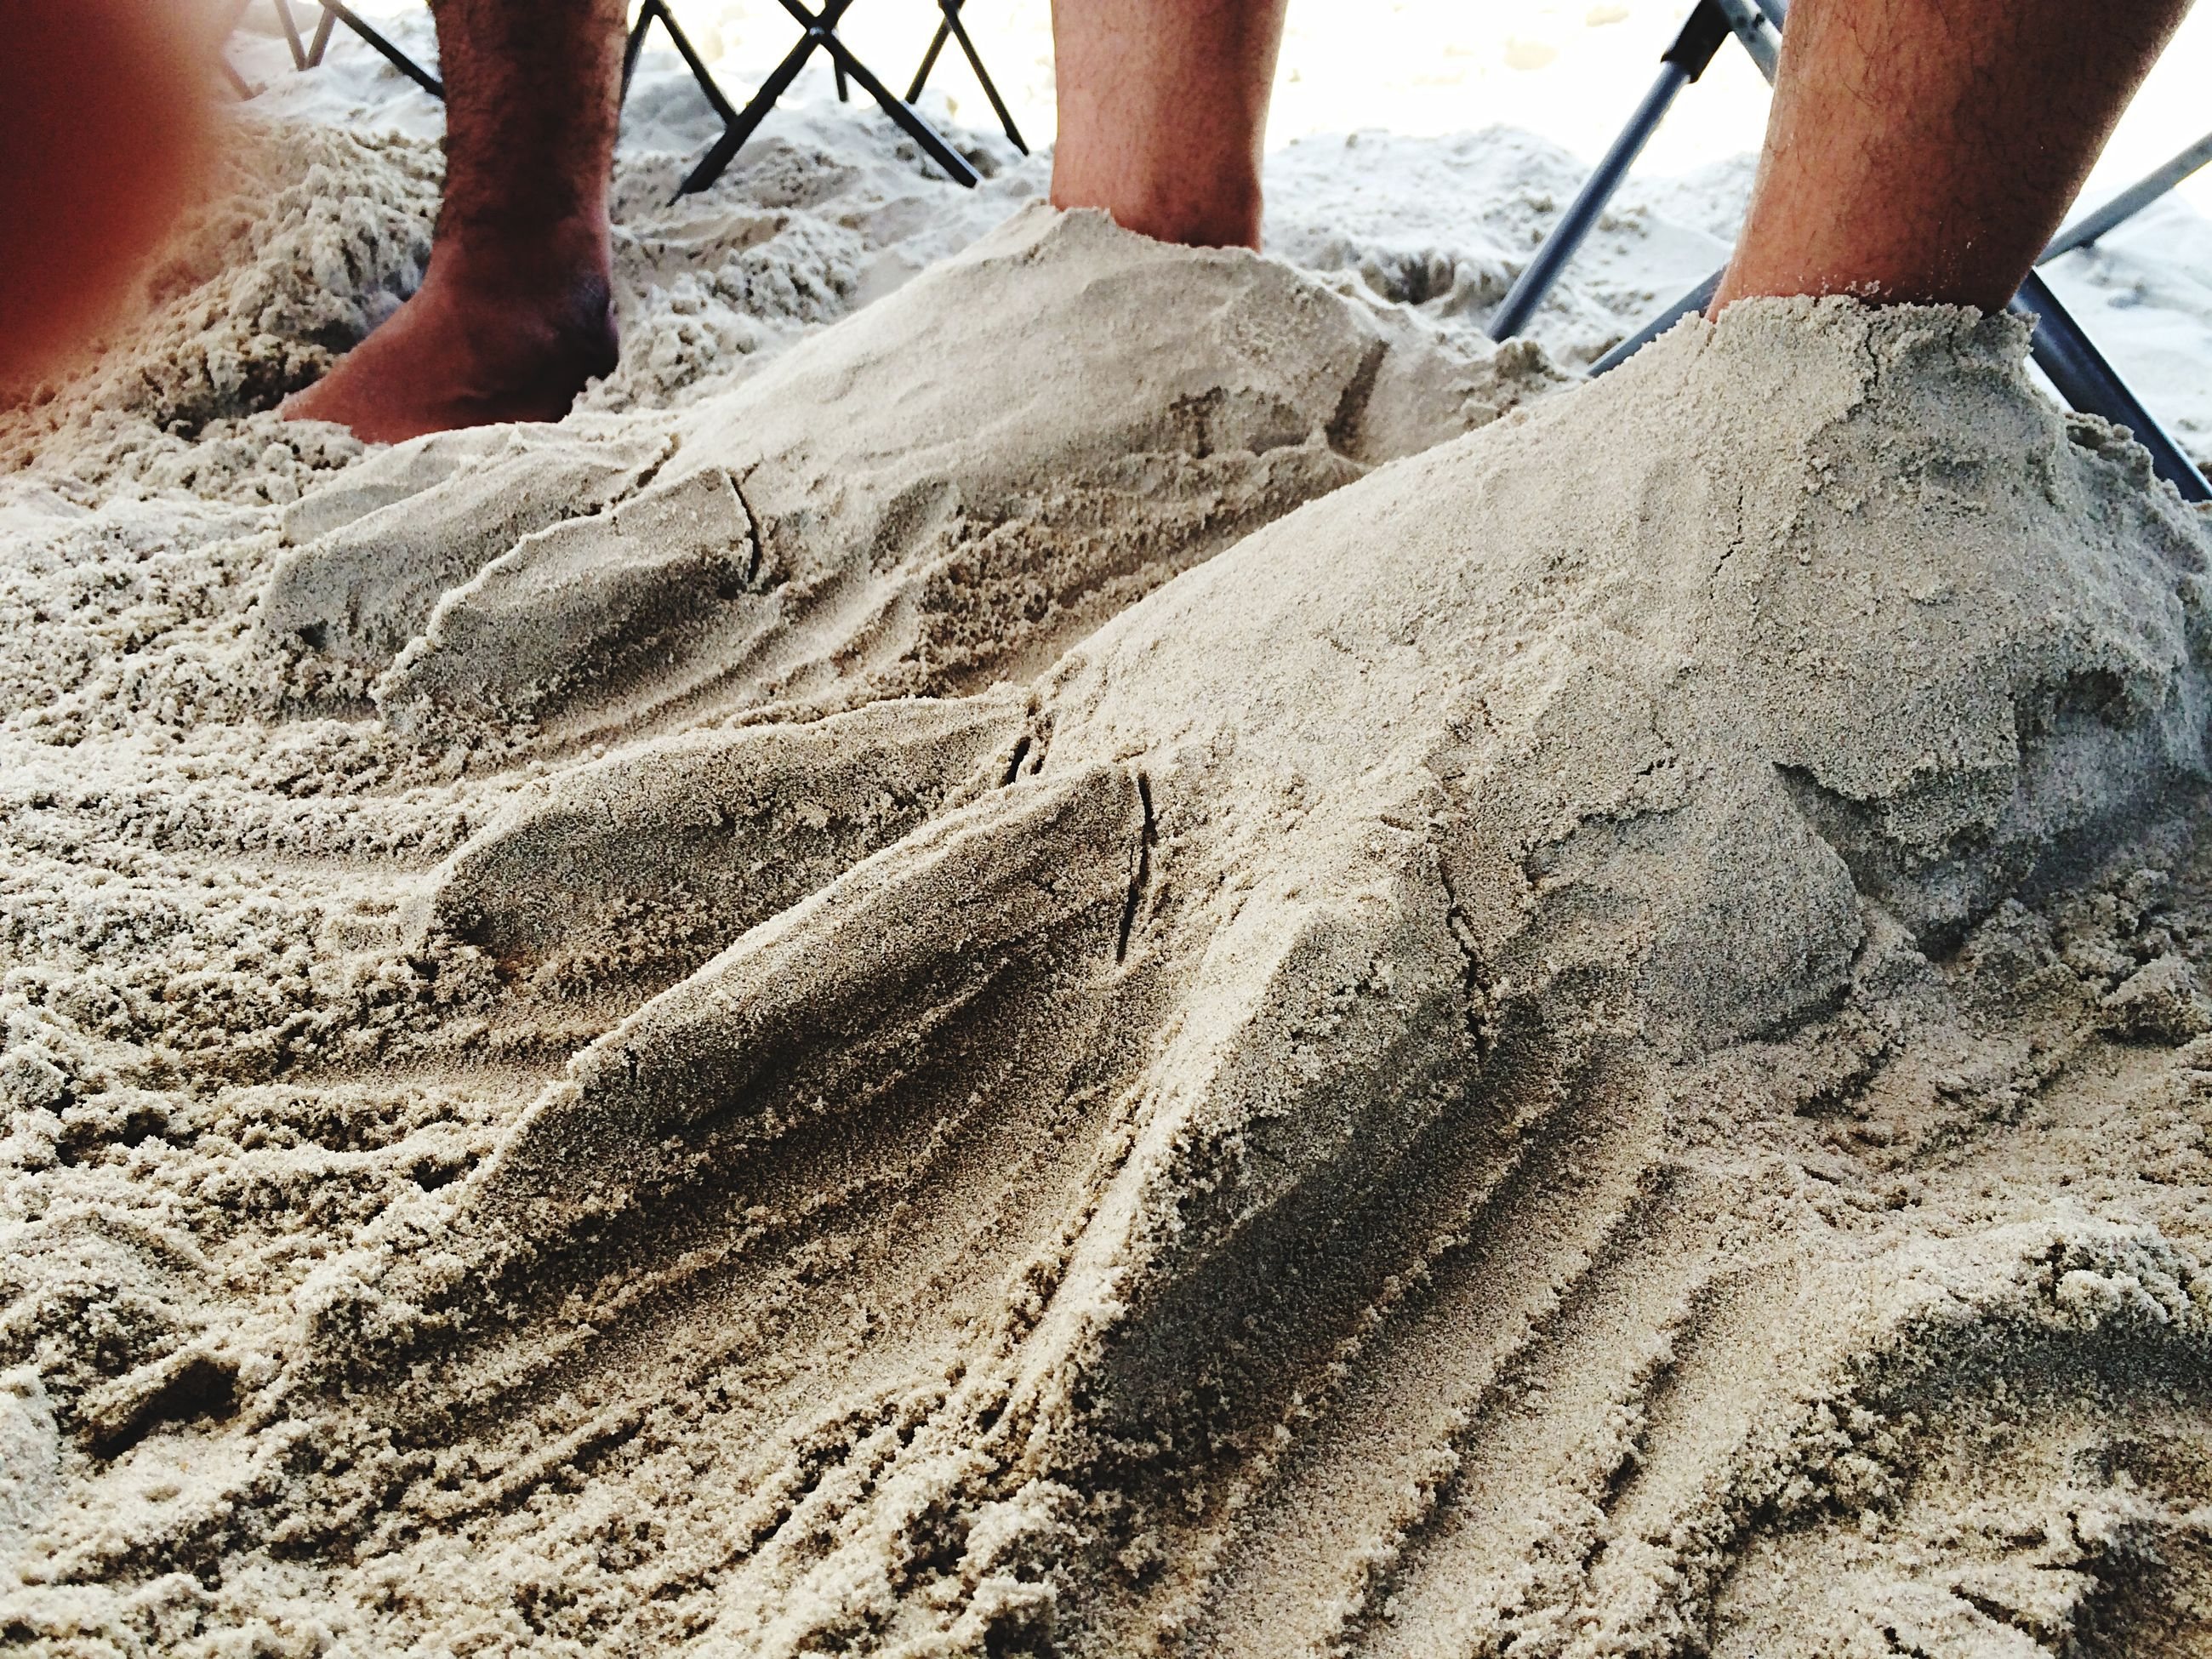 sand, beach, low section, sunlight, part of, day, water, shadow, nature, close-up, person, wet, outdoors, shore, surf, sea, cropped